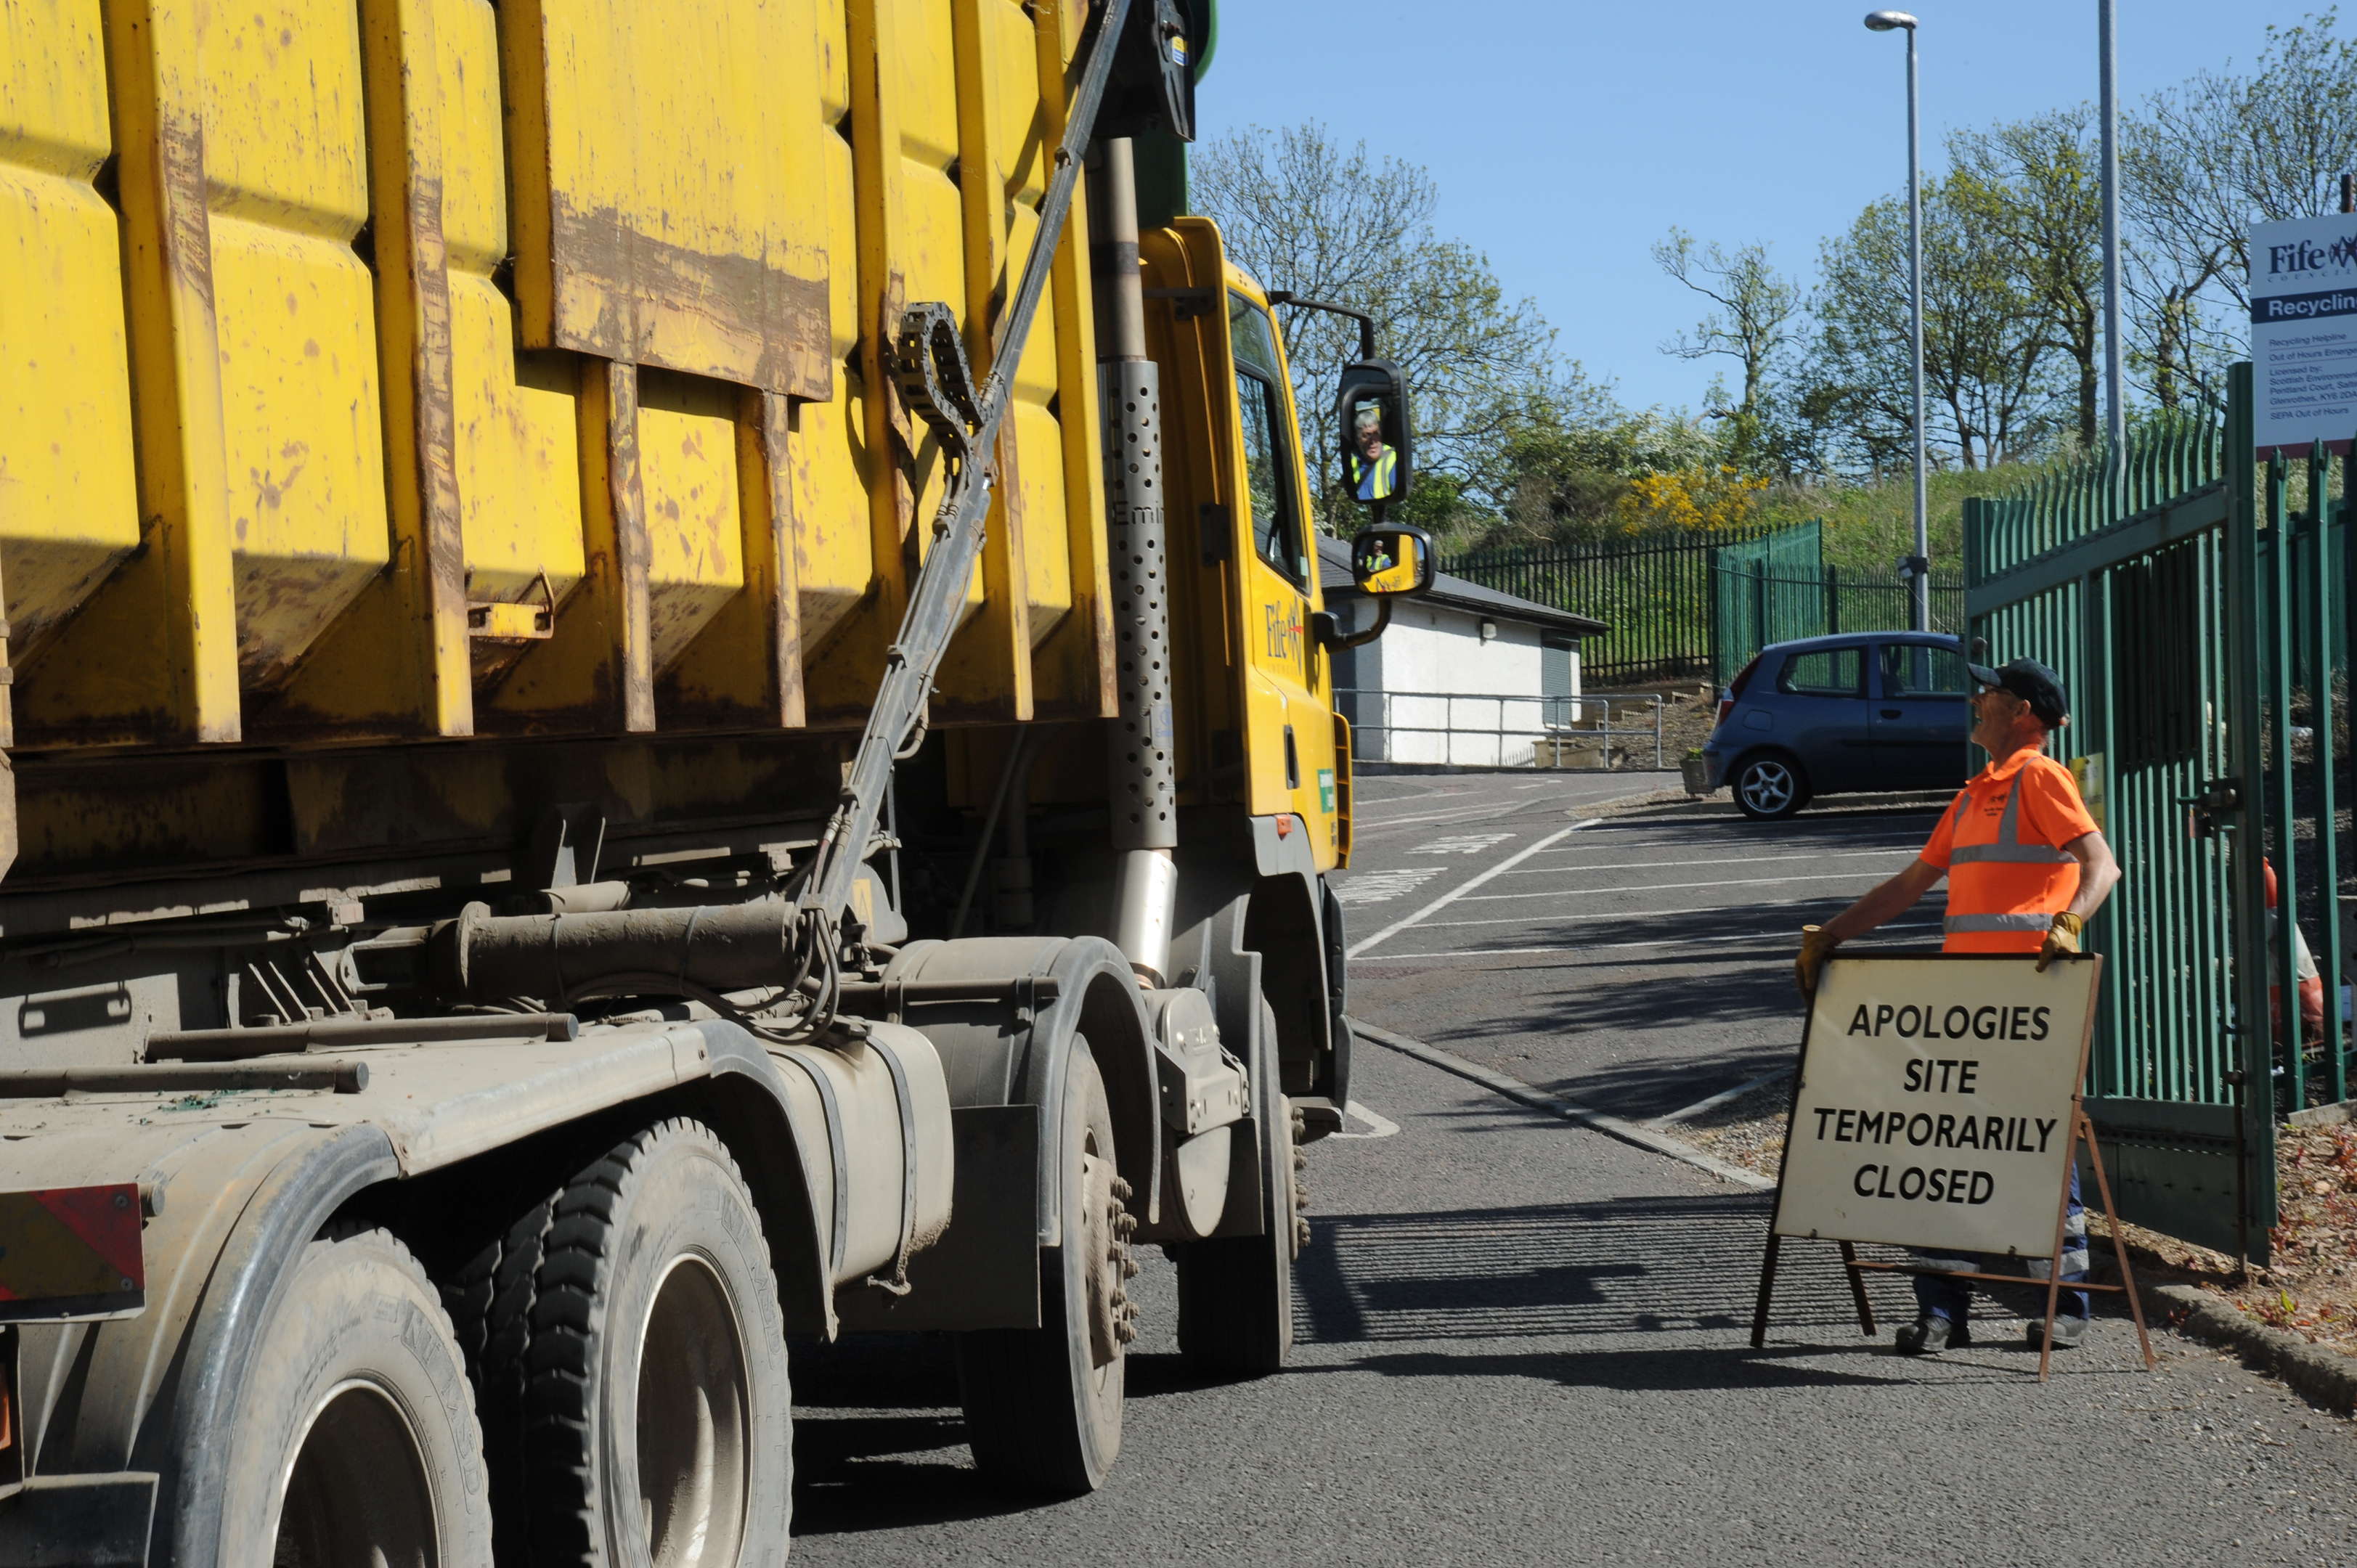 The recycling centre in St Andrews was closed on Wednesday afternoon.